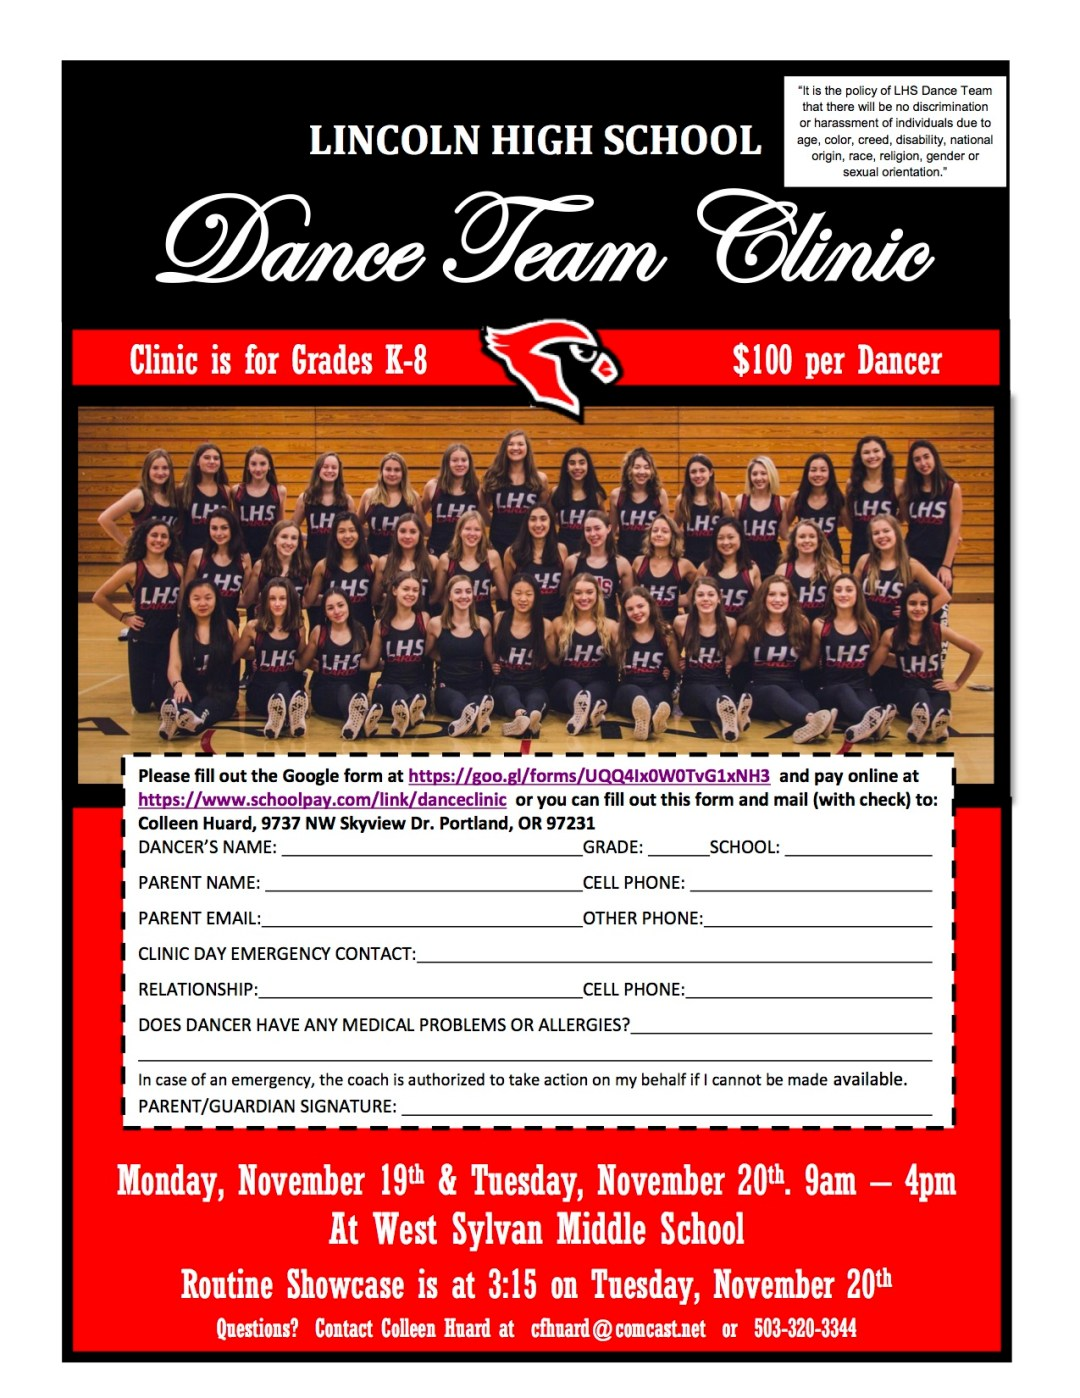 Dance Team Clinic 2018